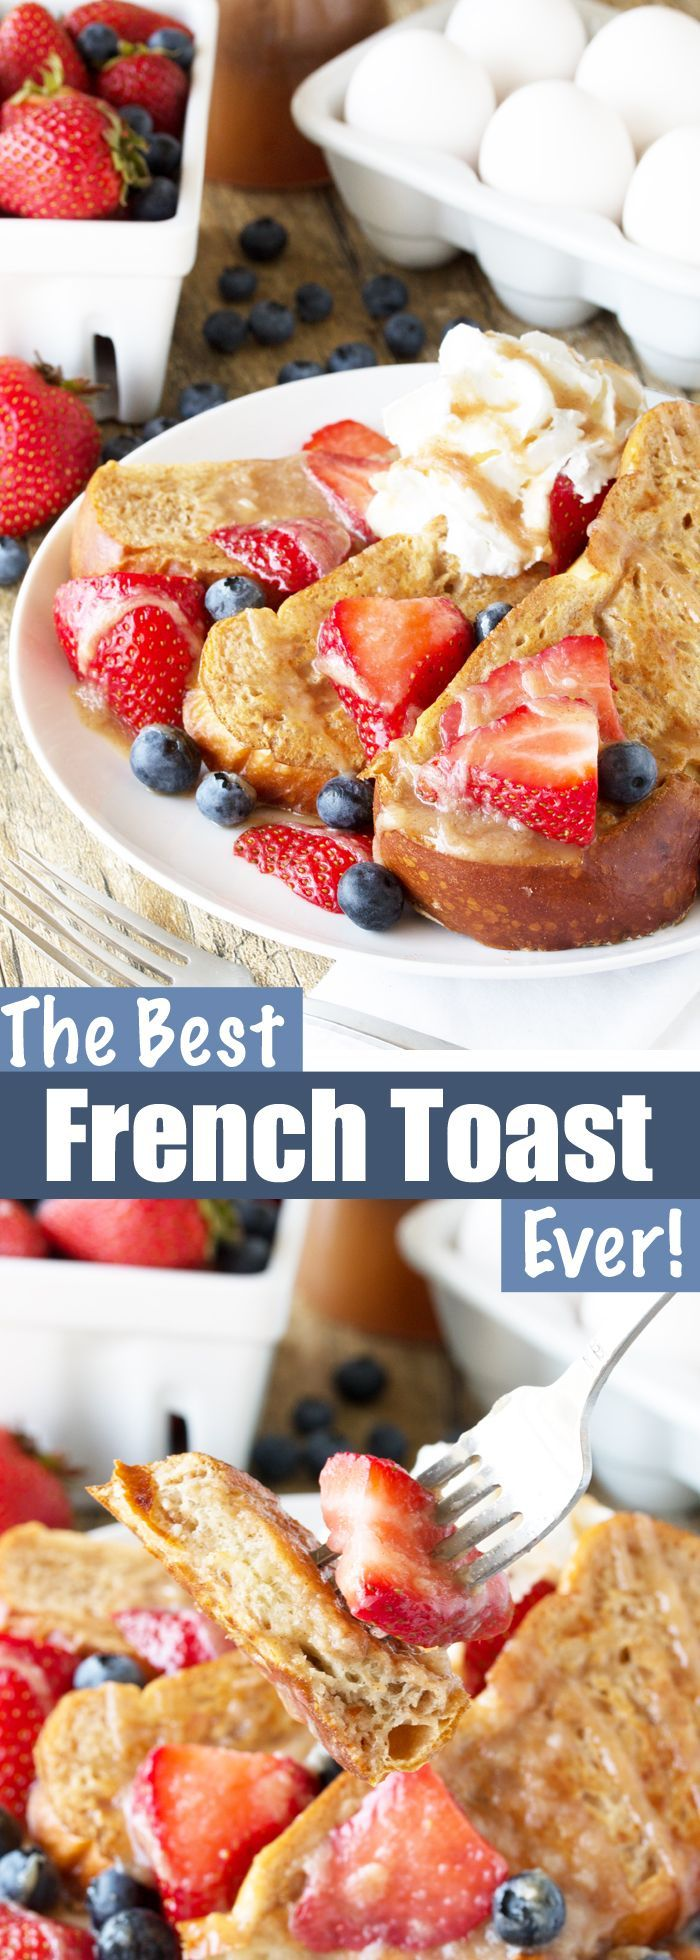 17 best images about breakfast recipes on pinterest On best gourmet recipes ever